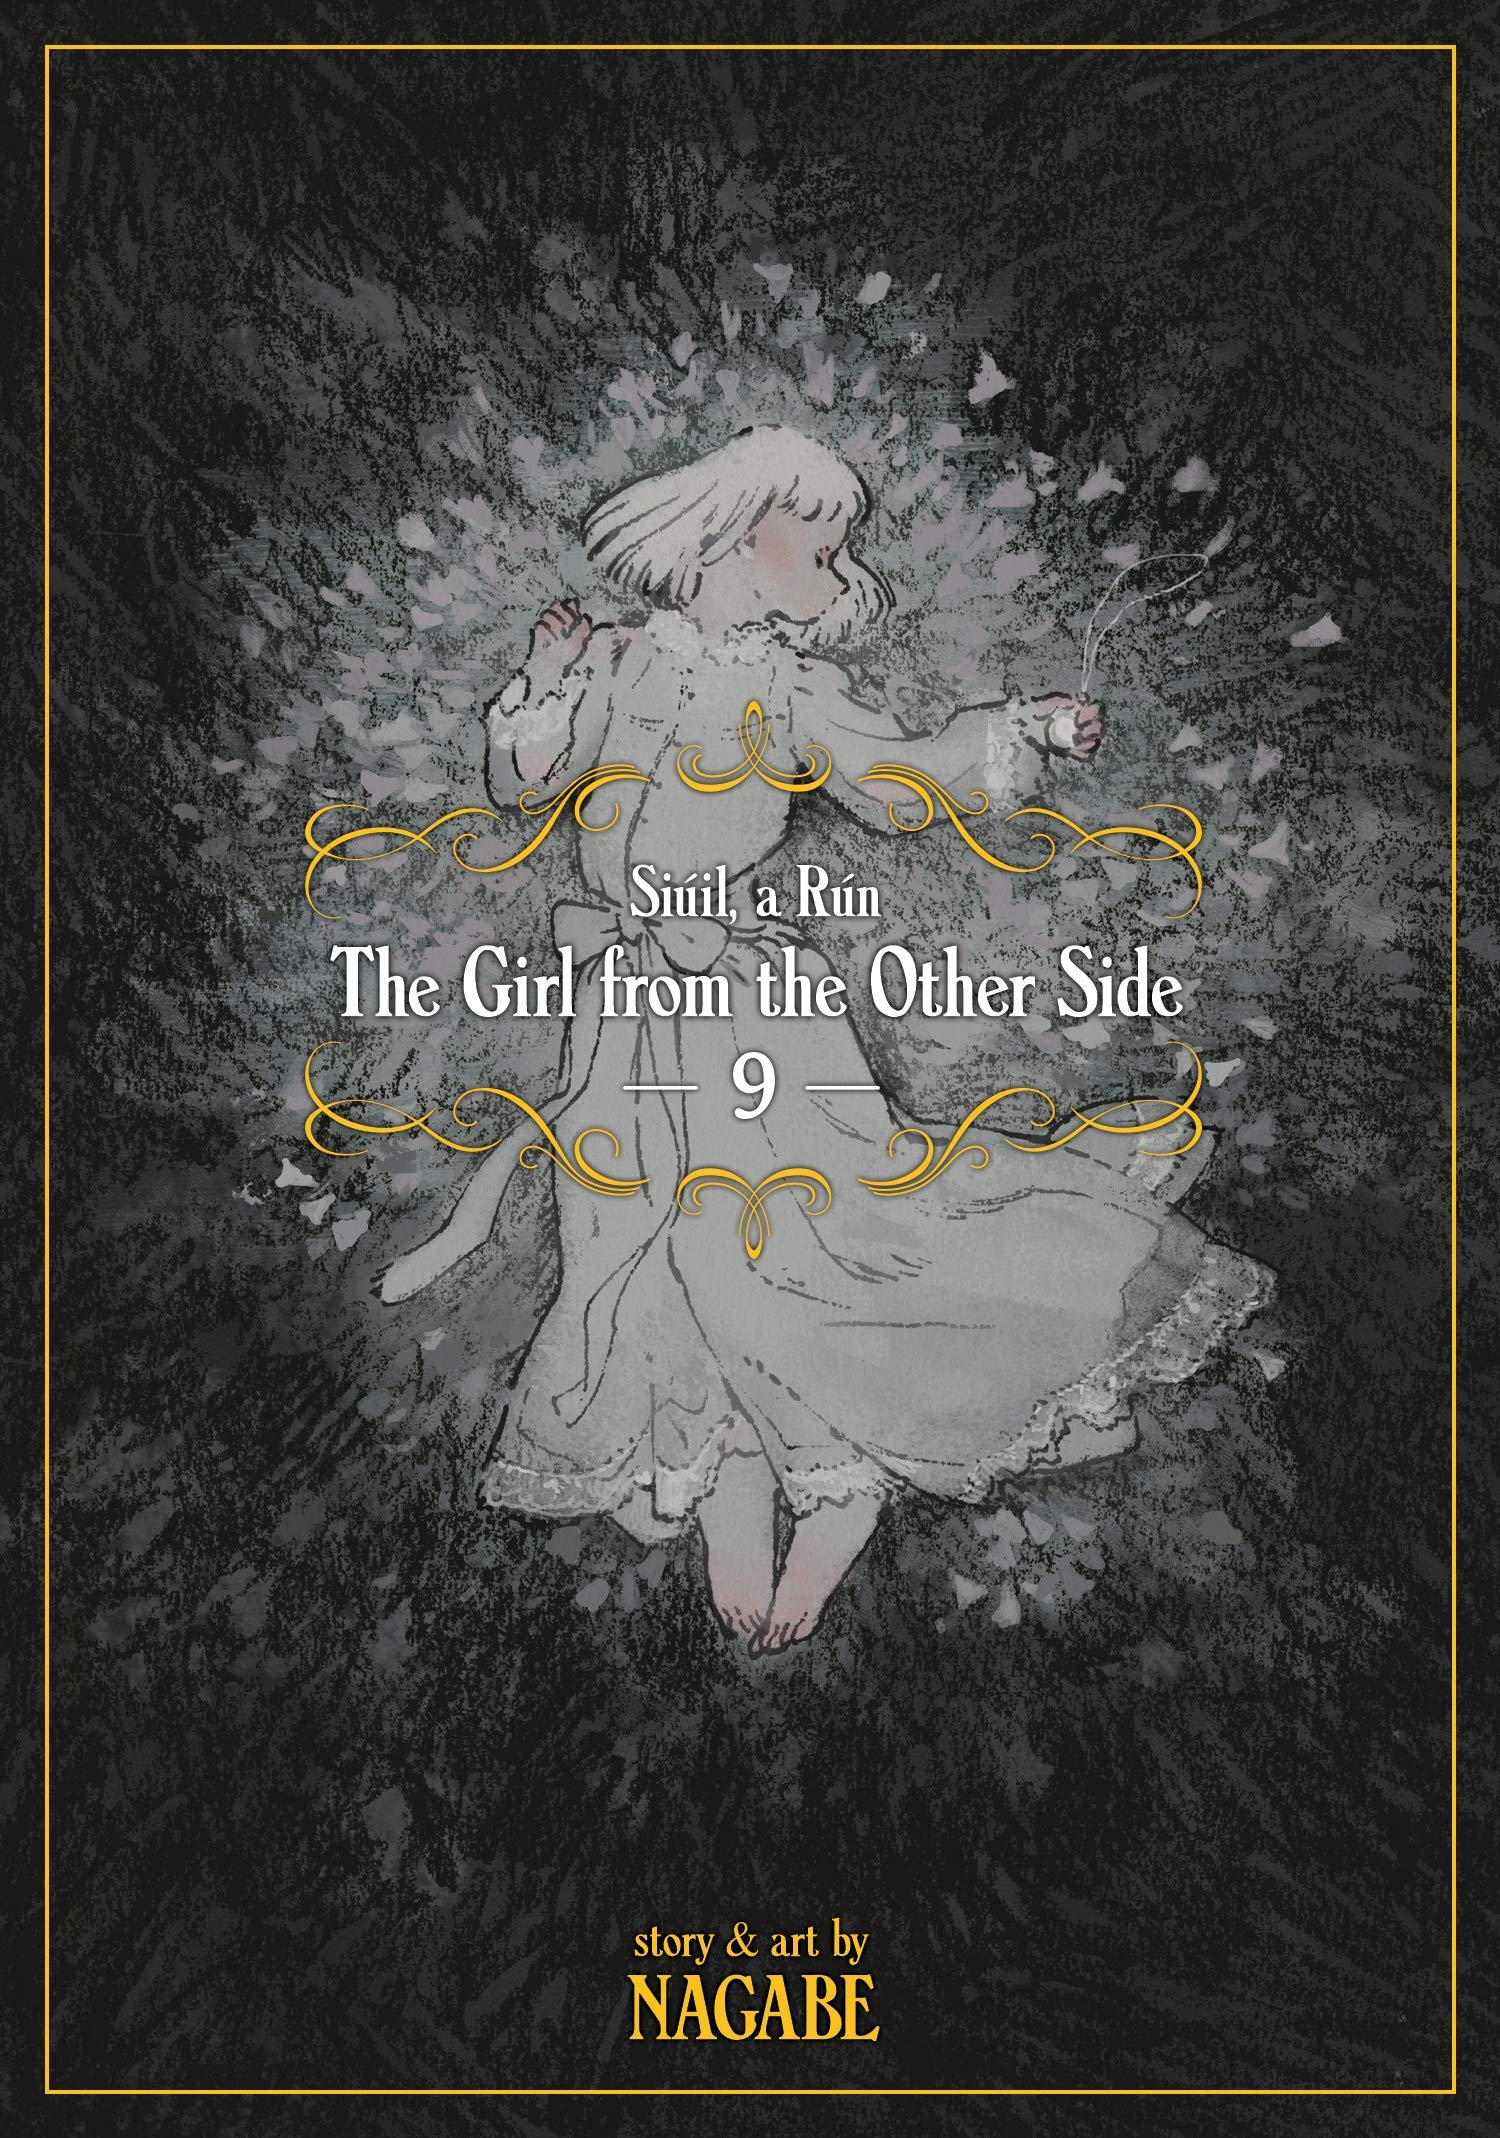 The Girl from the Other Side: Siuil, a Run. Volume 9